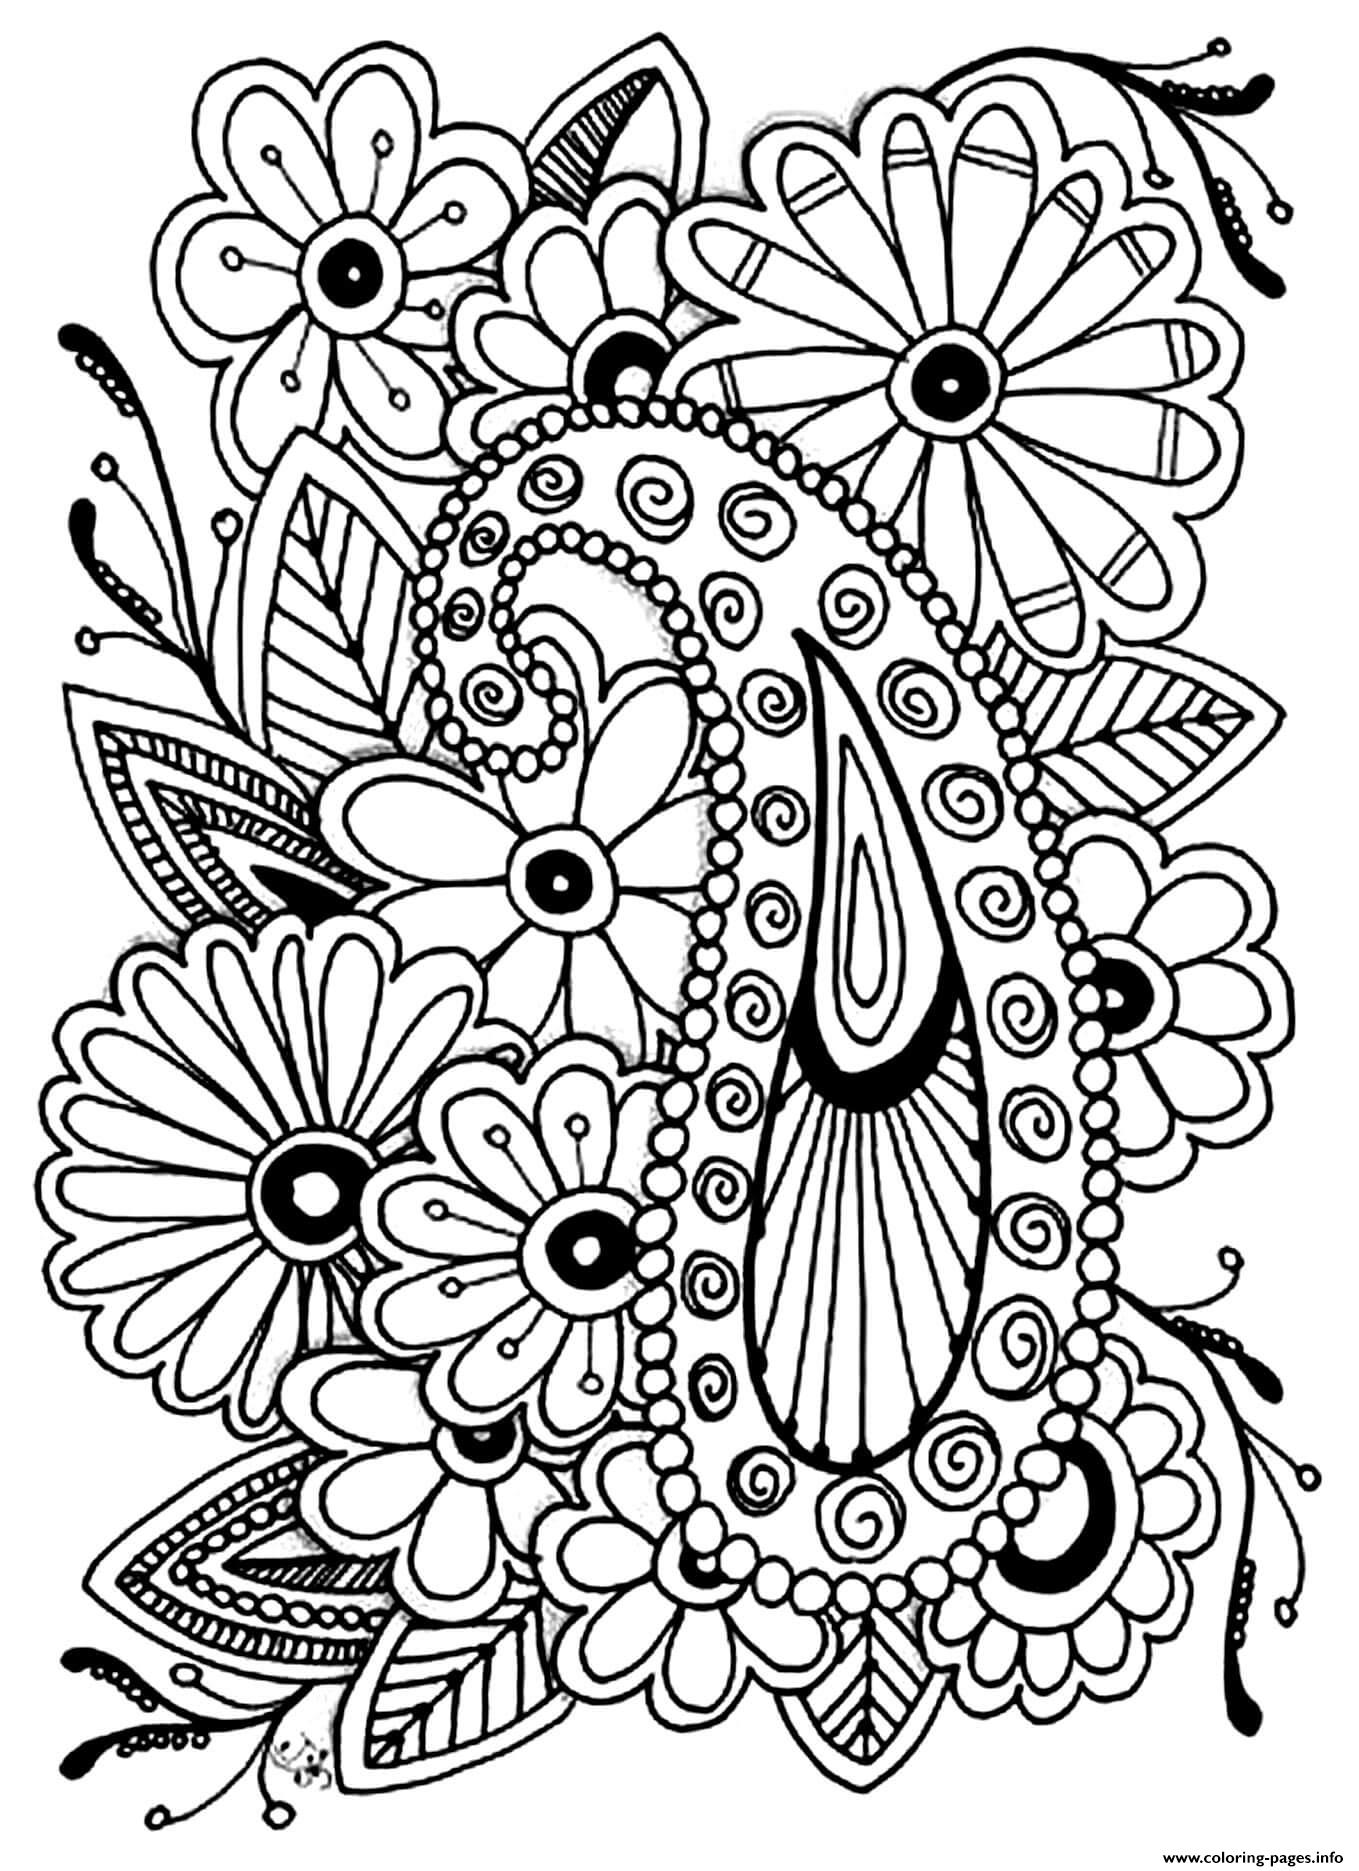 coloring flowers for adults adult coloring pages flowers to download and print for free flowers coloring for adults